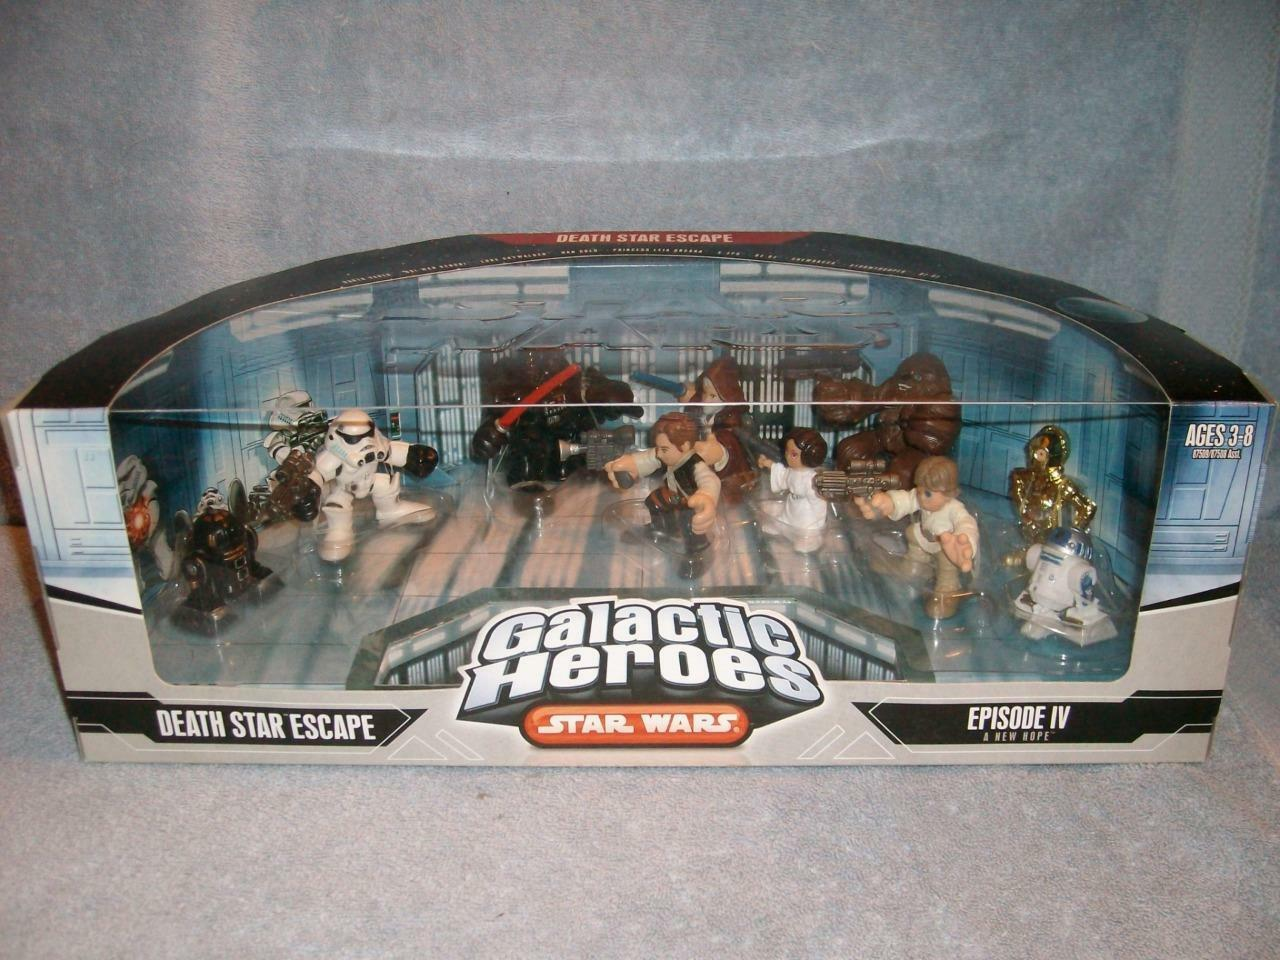 Death Star Escape Galactic Heroes Star Wars R2-Q5 R2-D2 Hasbro 2006 New Sealed